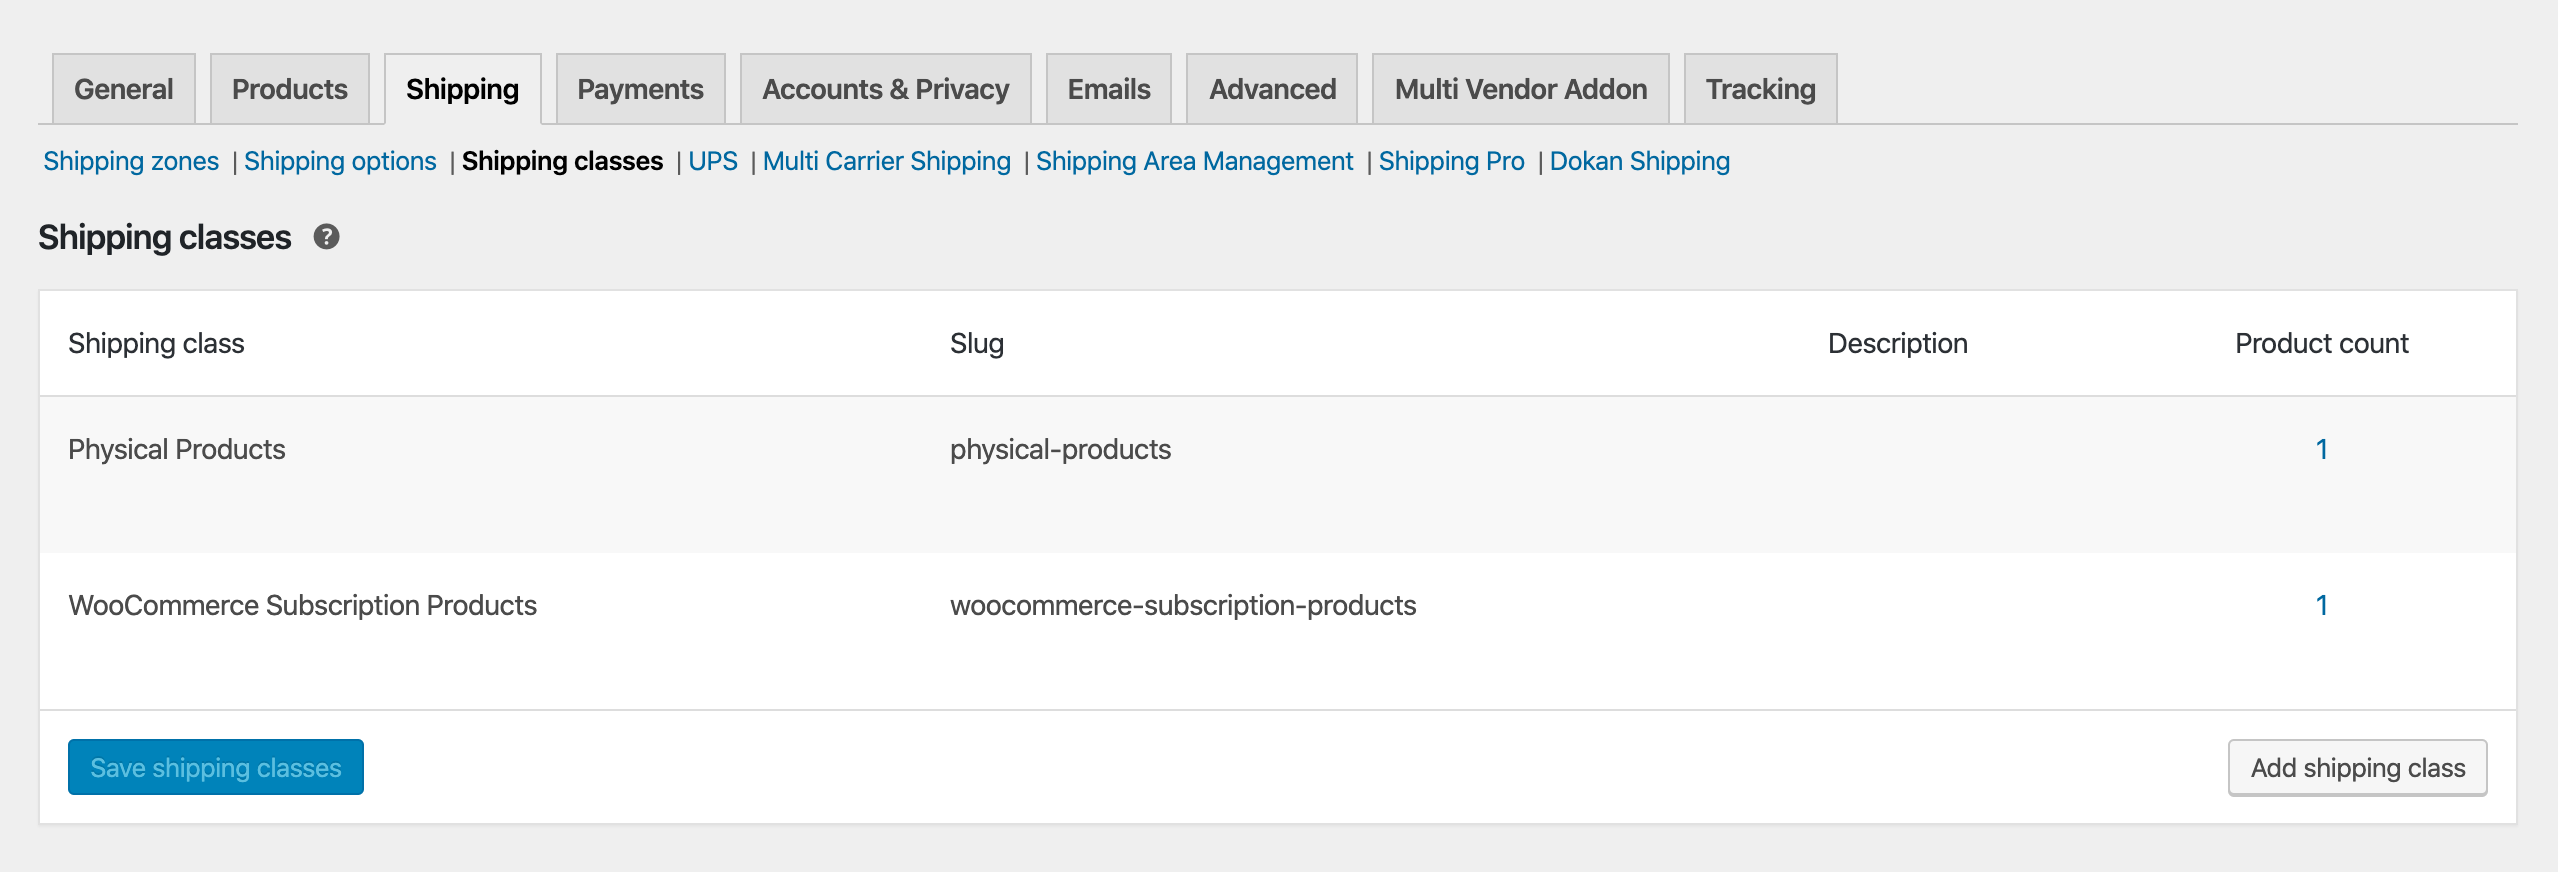 woocommerce subscription products